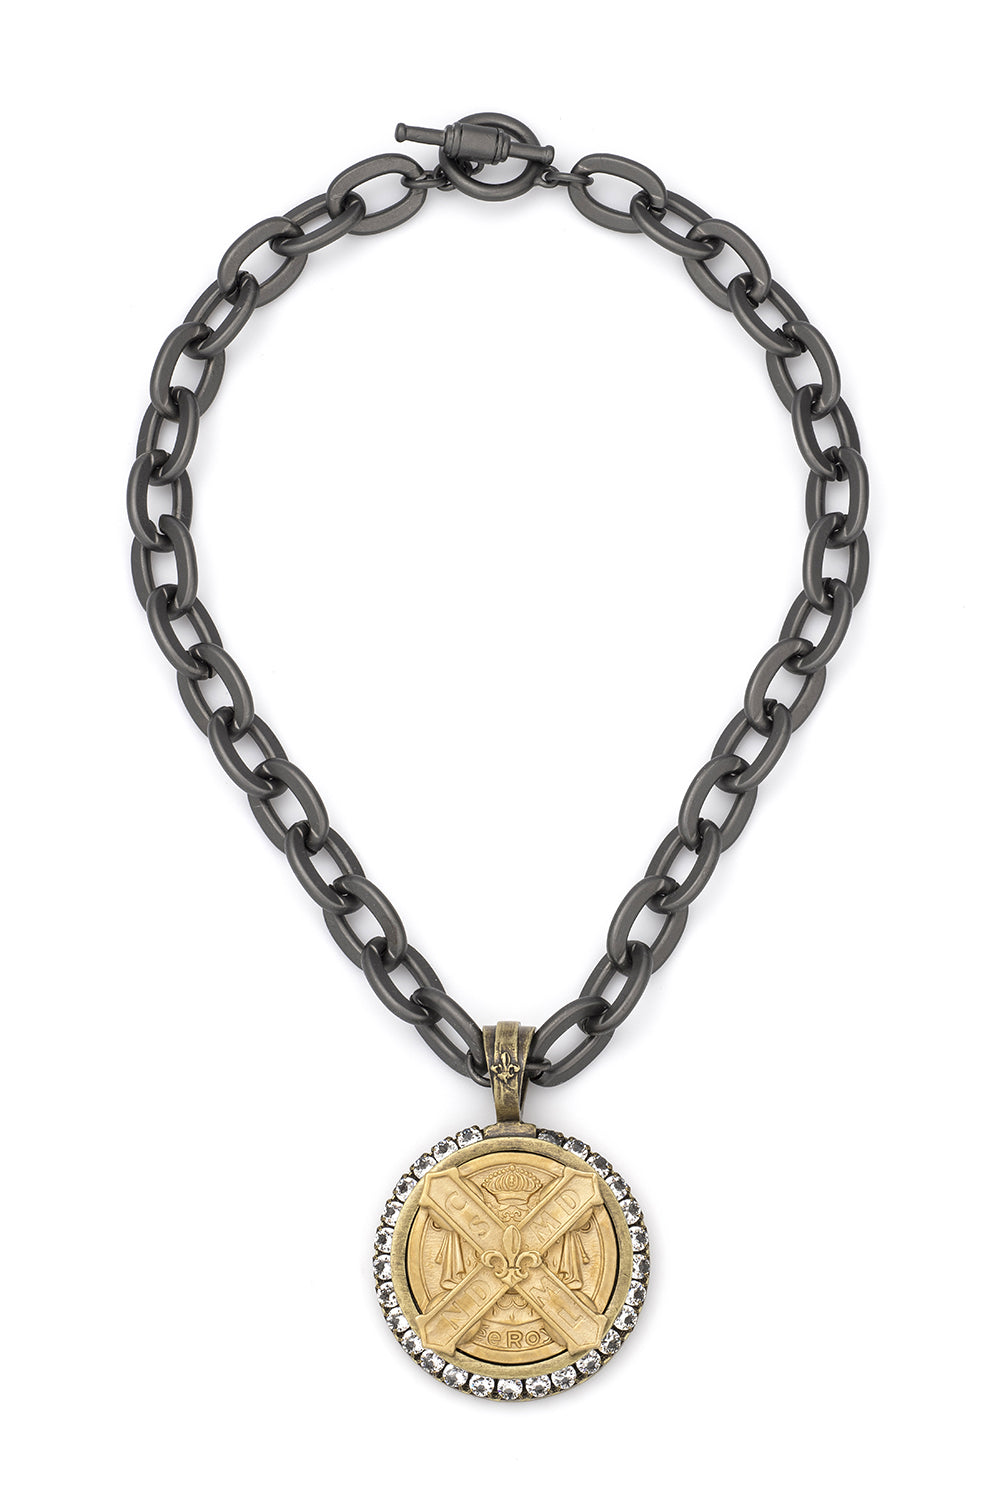 Cuvee B Medallion Necklace with Black Lourdes Chain